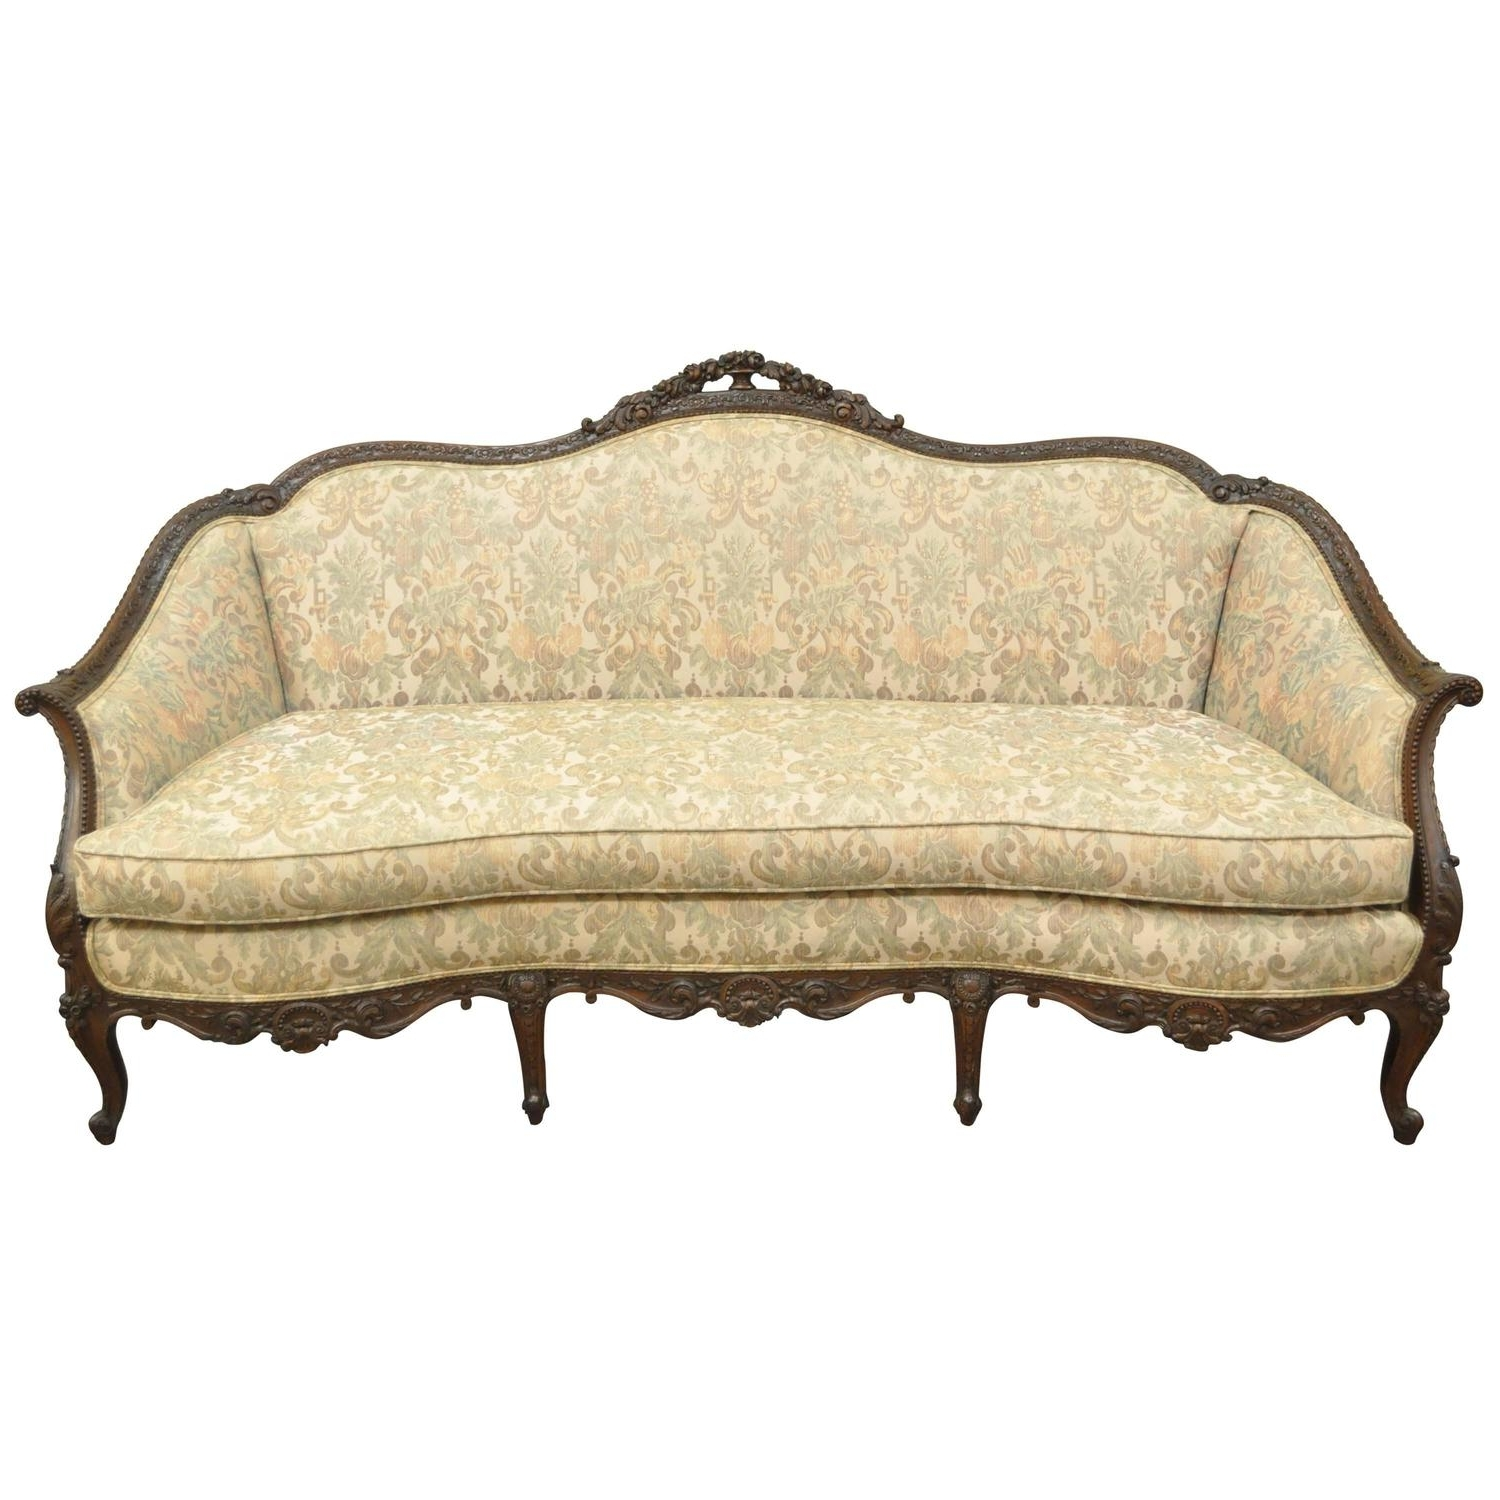 Trendy 1930s Sofas With 1930s French Louis Xv Hollywood Regency Style Finely Carved (View 7 of 20)